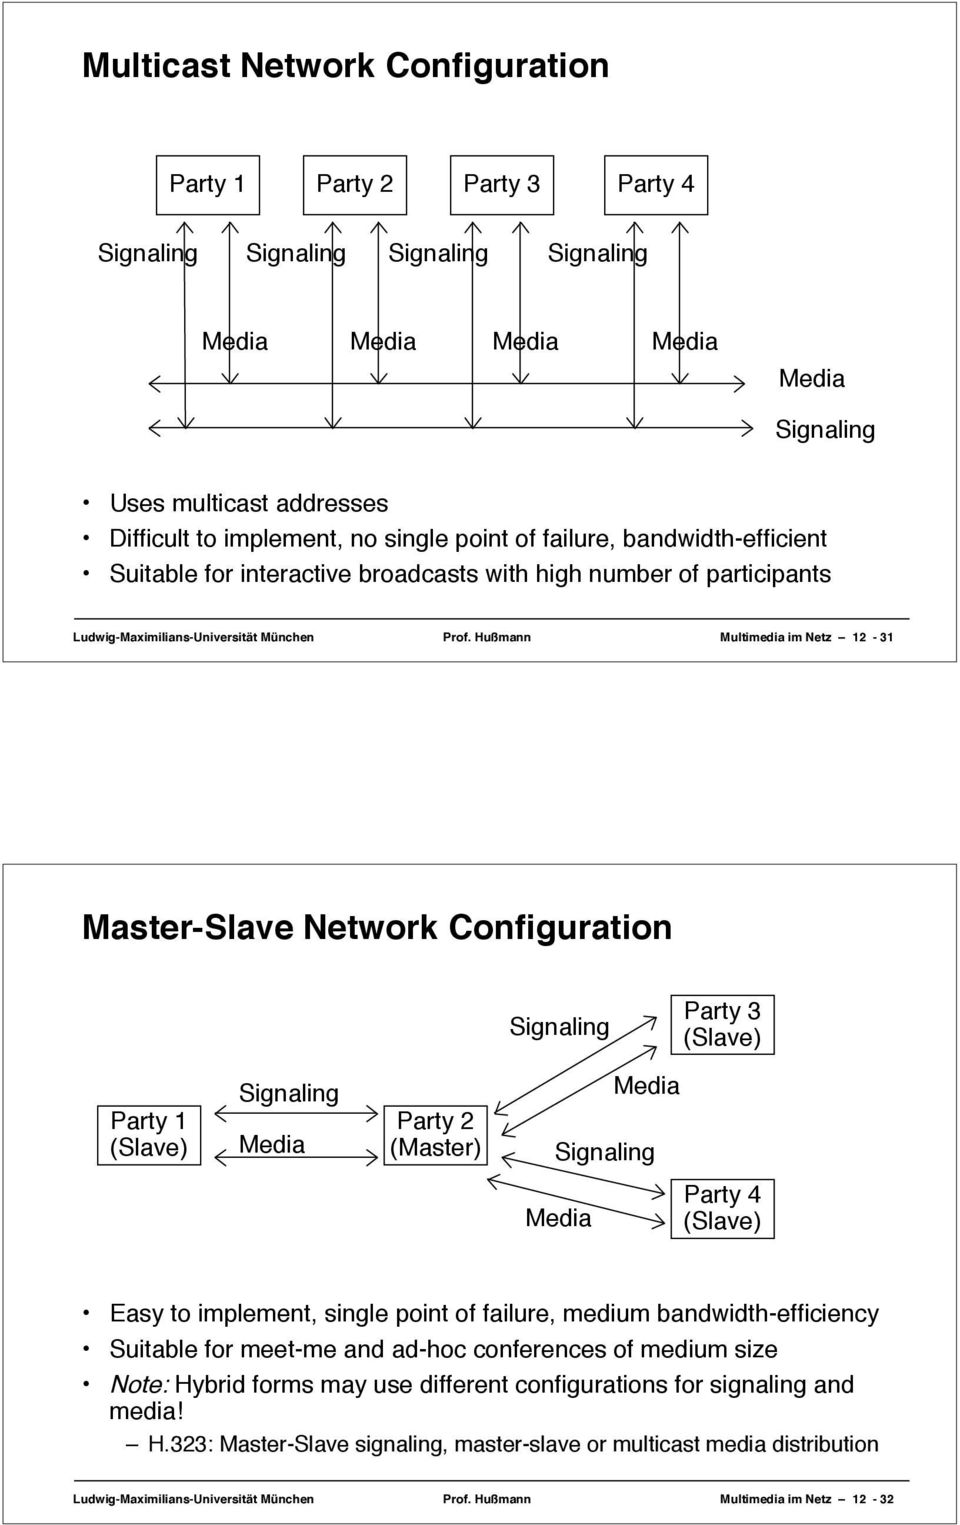 Hußmann Multimedia im Netz 12-31 Master-Slave Network Configuration Party 3 (Slave) Party 1 (Slave) Party 2 (Master) Party 4 (Slave) Easy to implement, single point of failure, medium